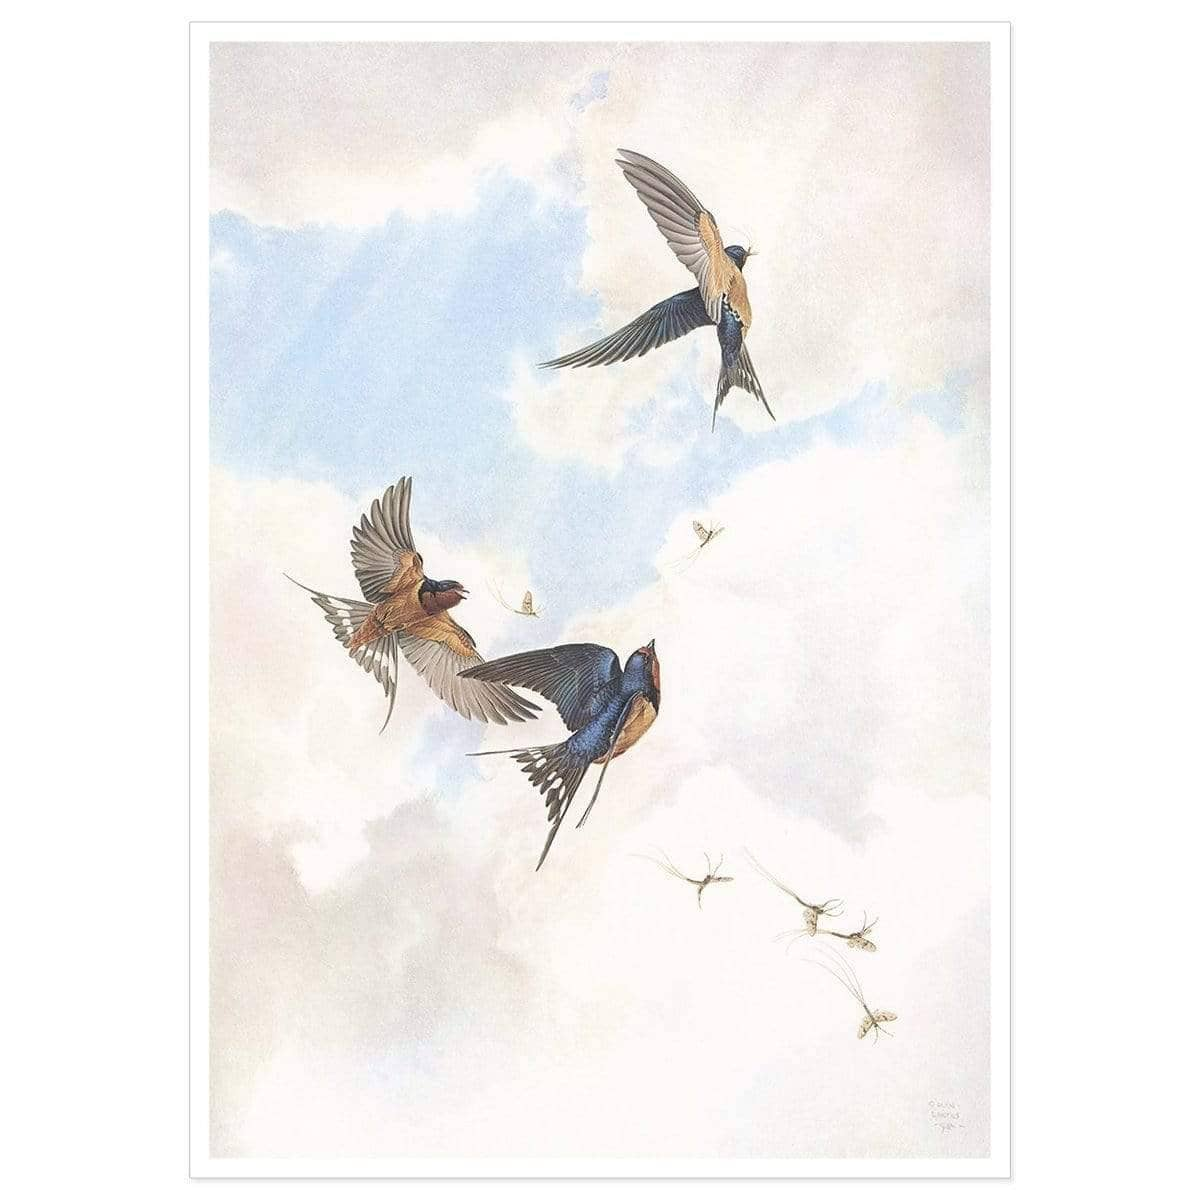 Barn Swallows - Art Print by Glen Loates from the Glen Loates Store